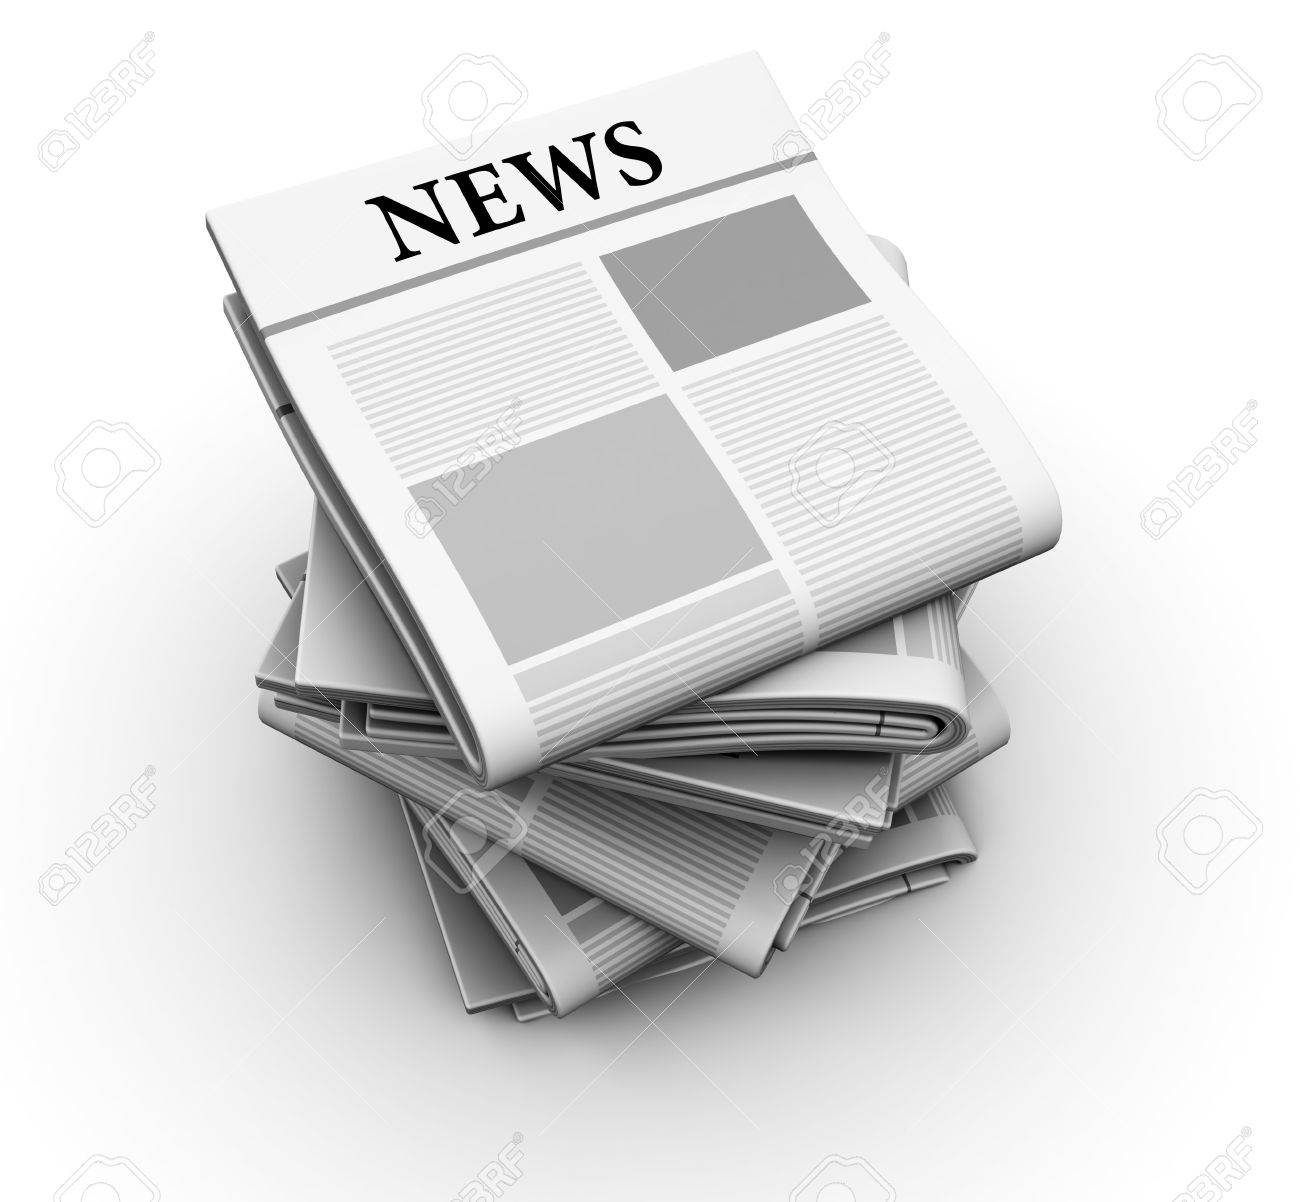 3d illustration of newspapers stack over white background Stock Illustration - 8534553